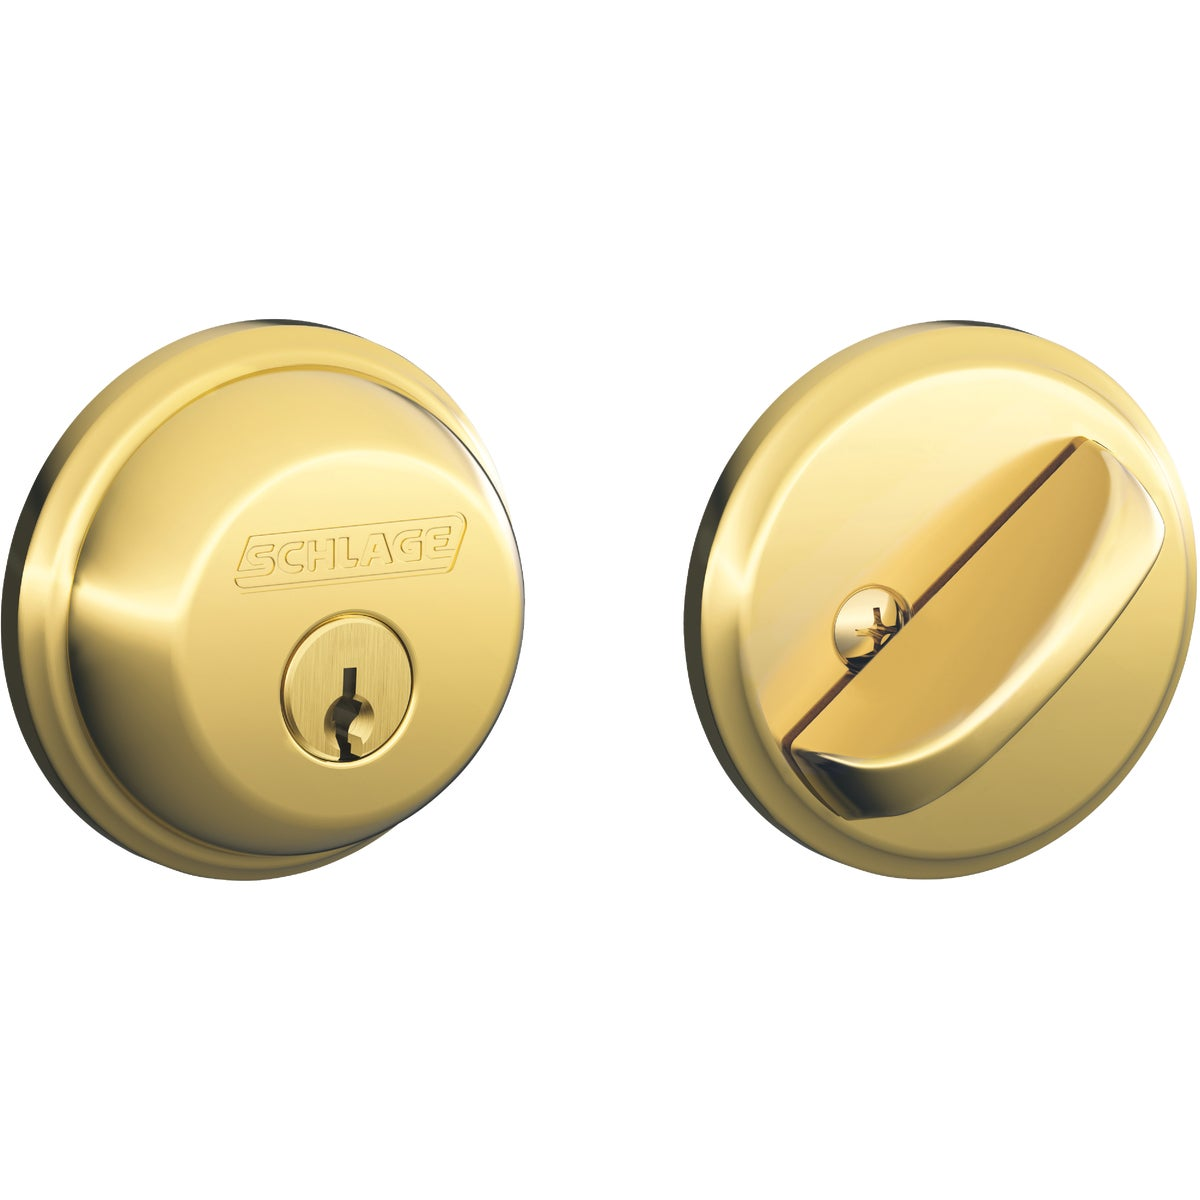 Item 211605, Visual pack. B-series single cylinder deadbolt for exterior doors. Grade 1 security. Features new Snap-And-Stay hands-free installation.